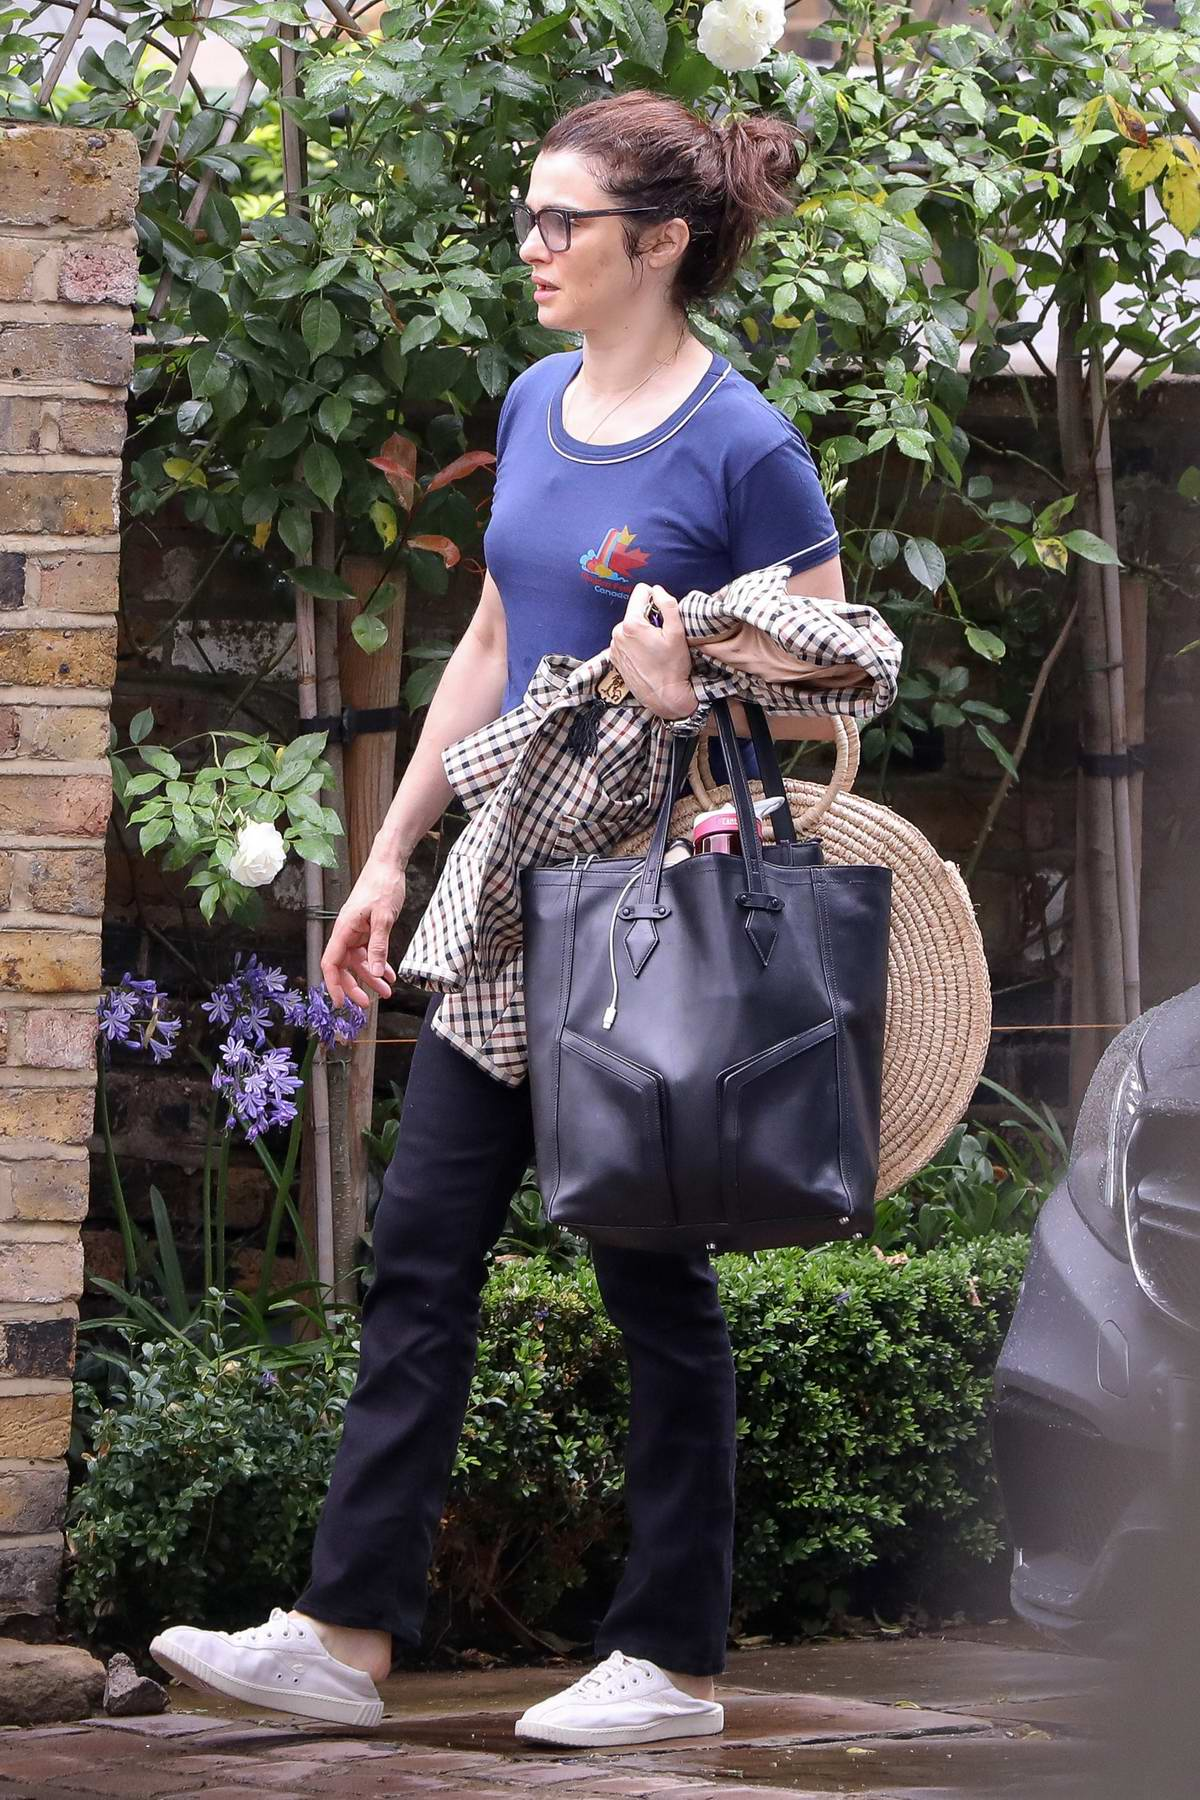 Rachel Weisz seen leaving her home in London, UK